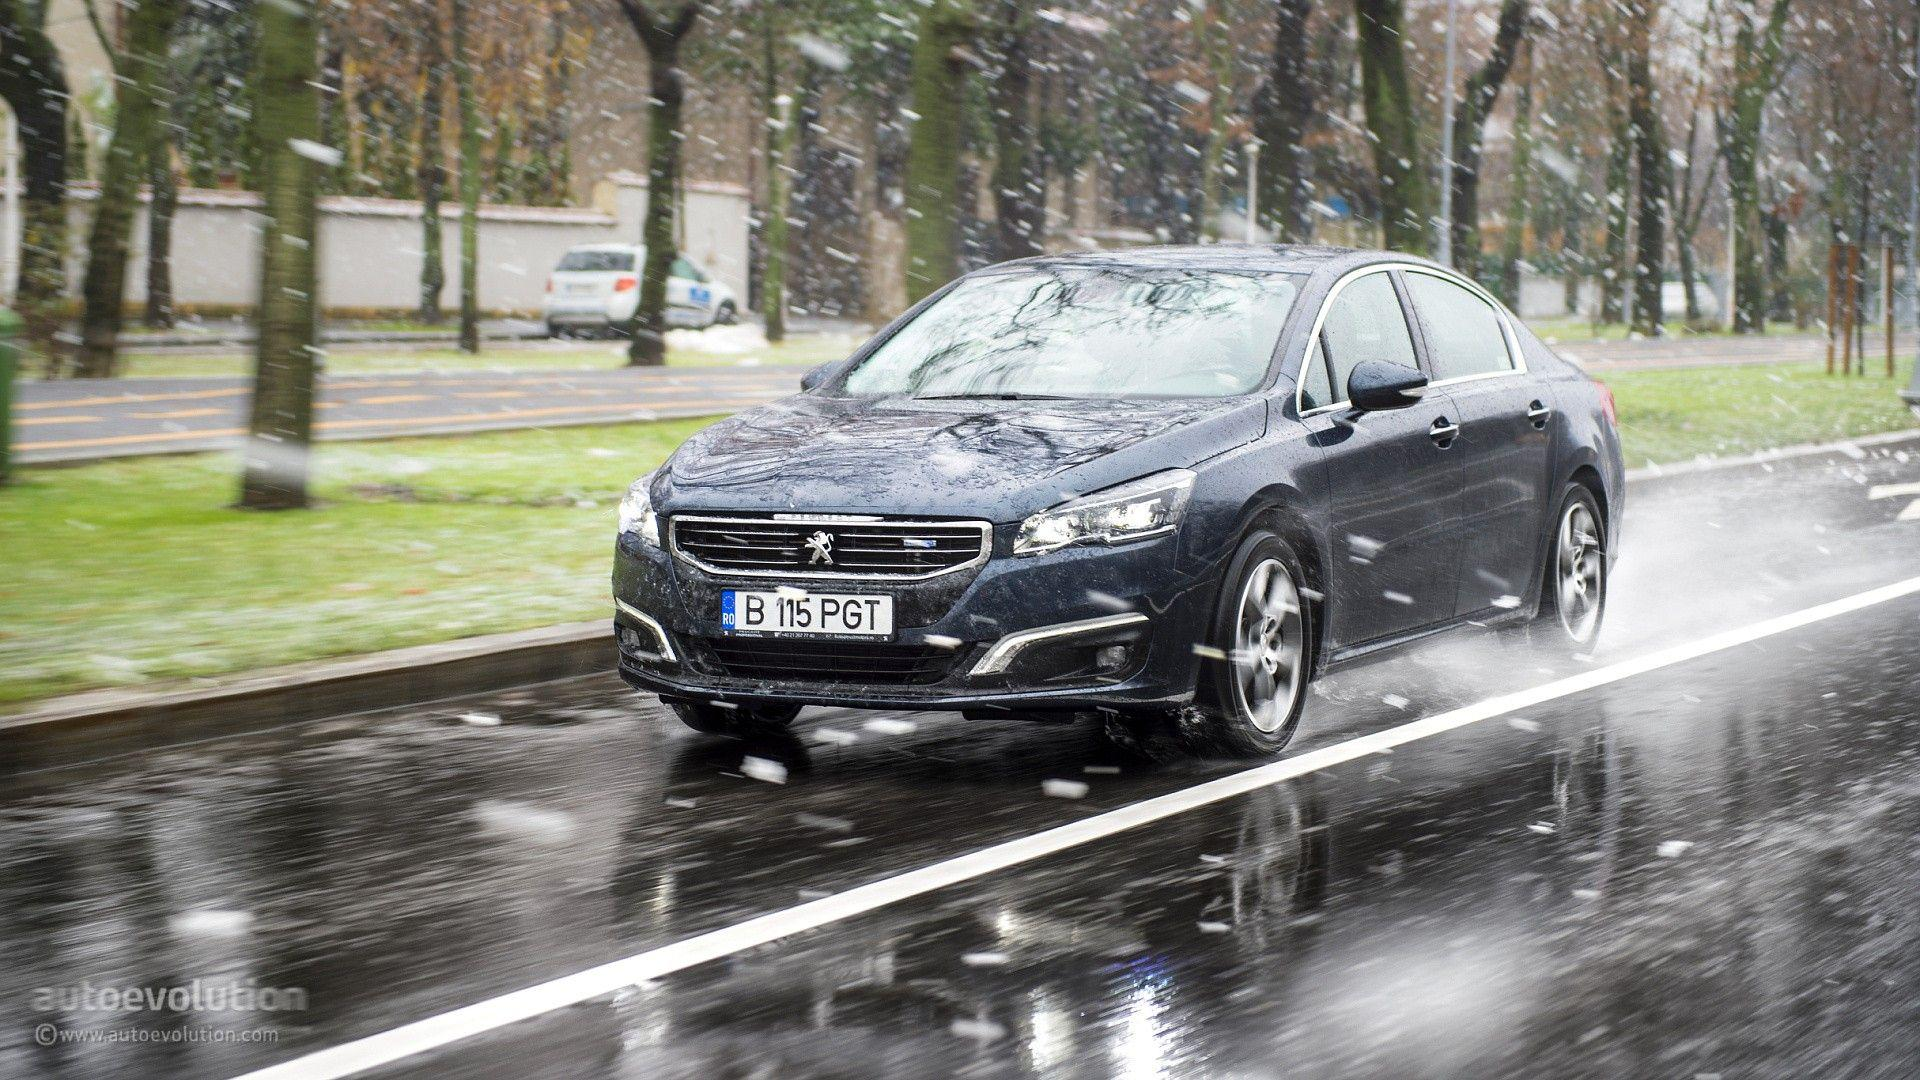 2015 Peugeot 508 HD Wallpapers